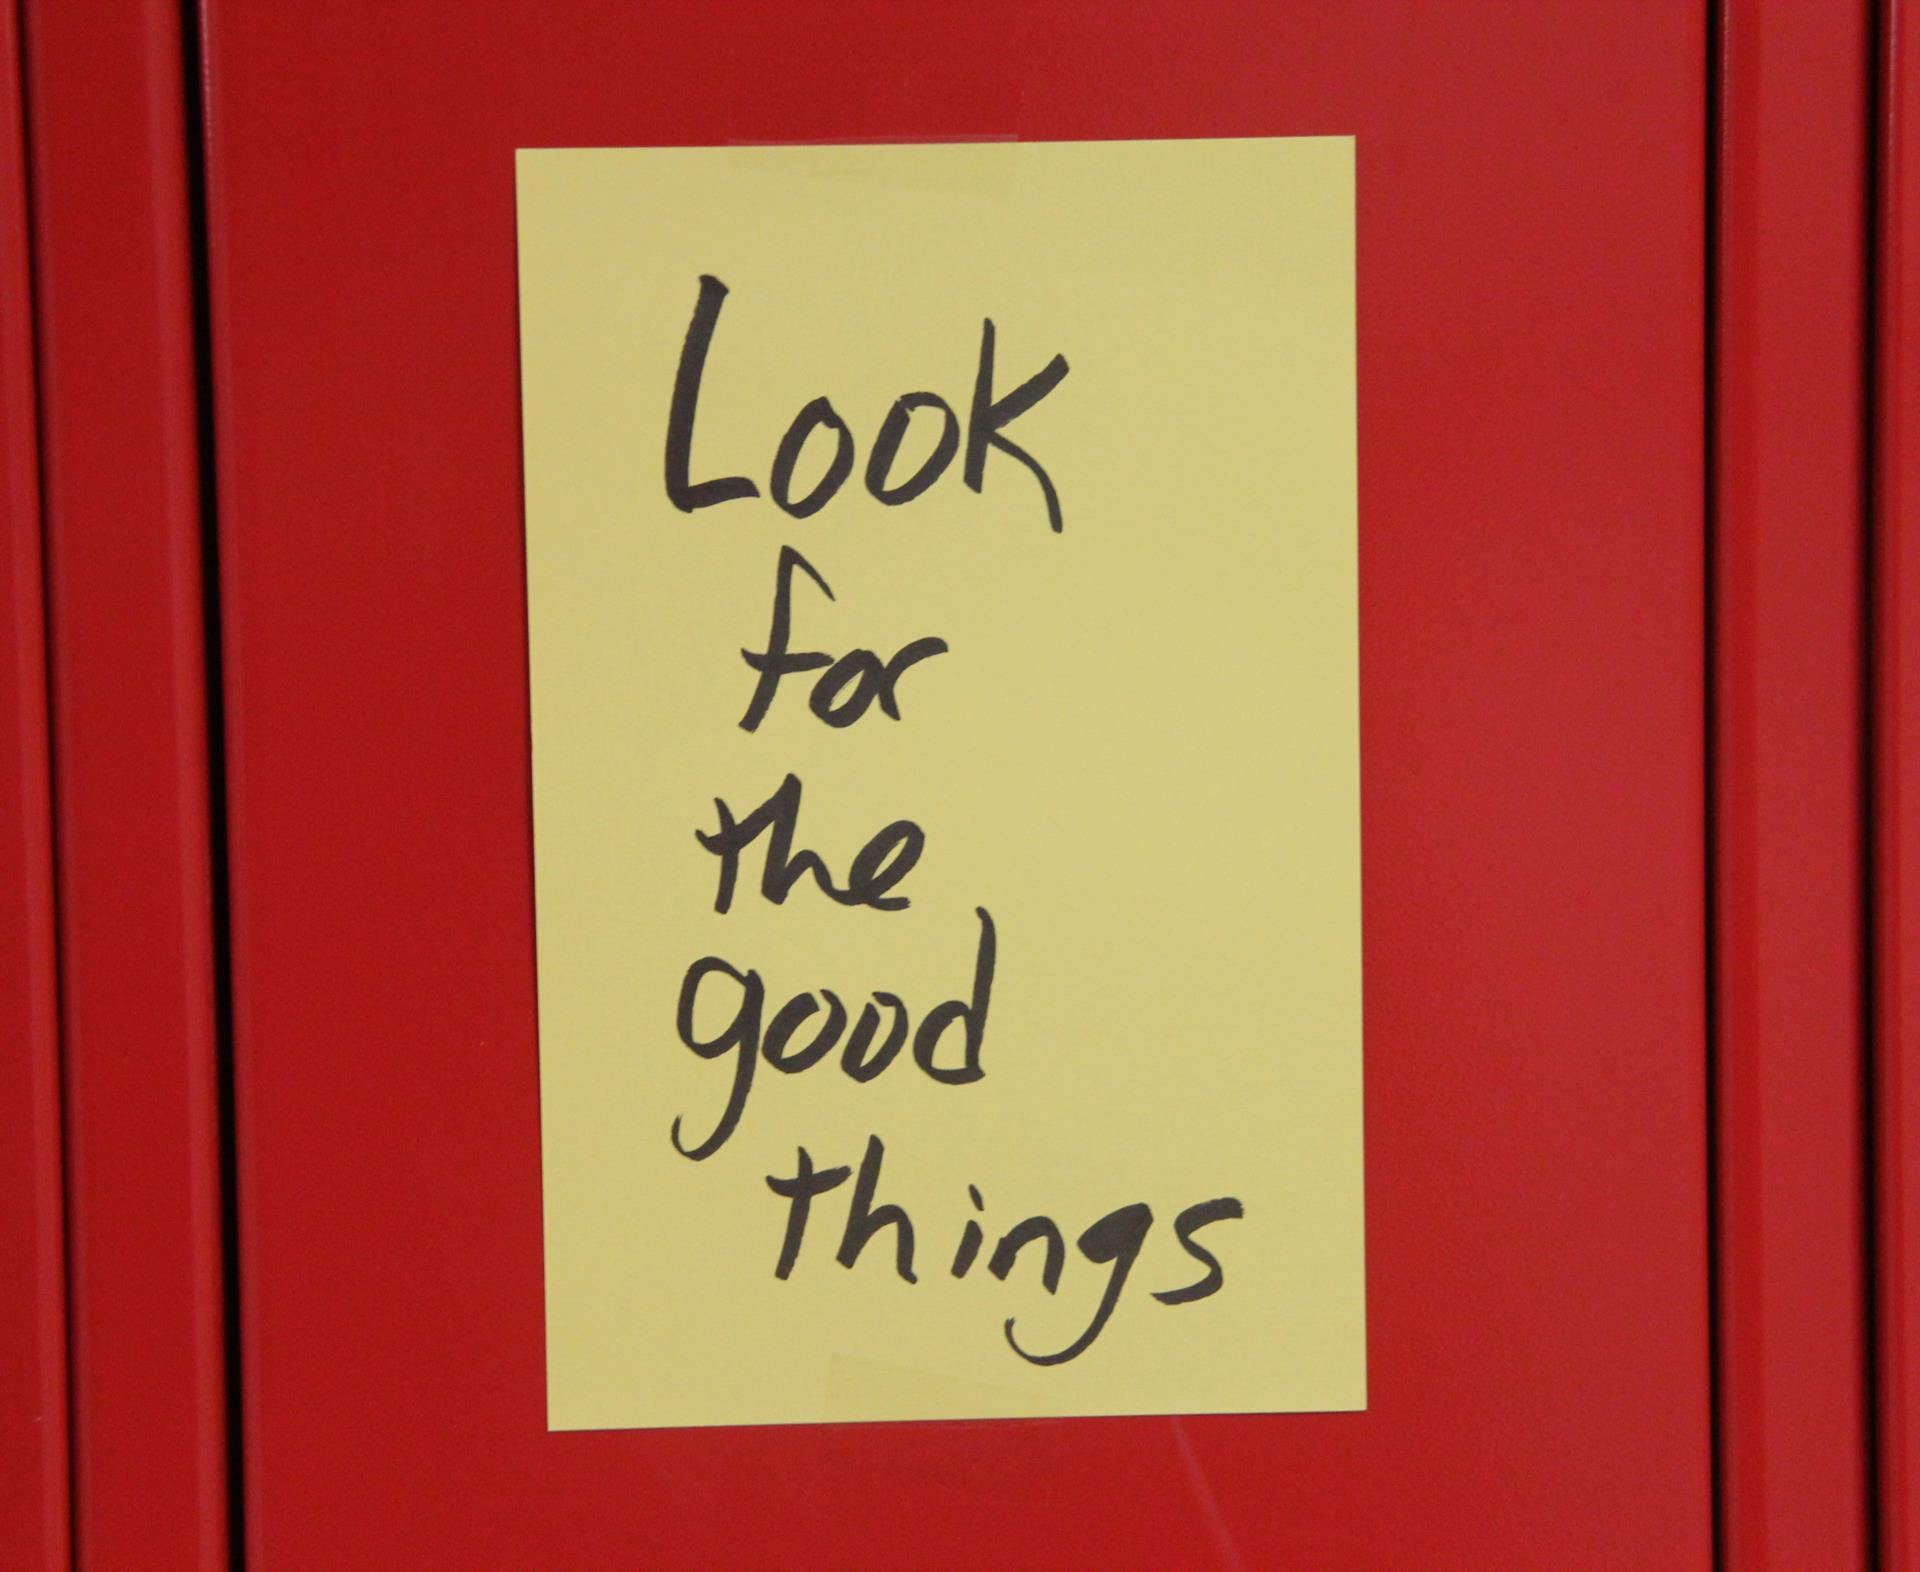 Look for the good things